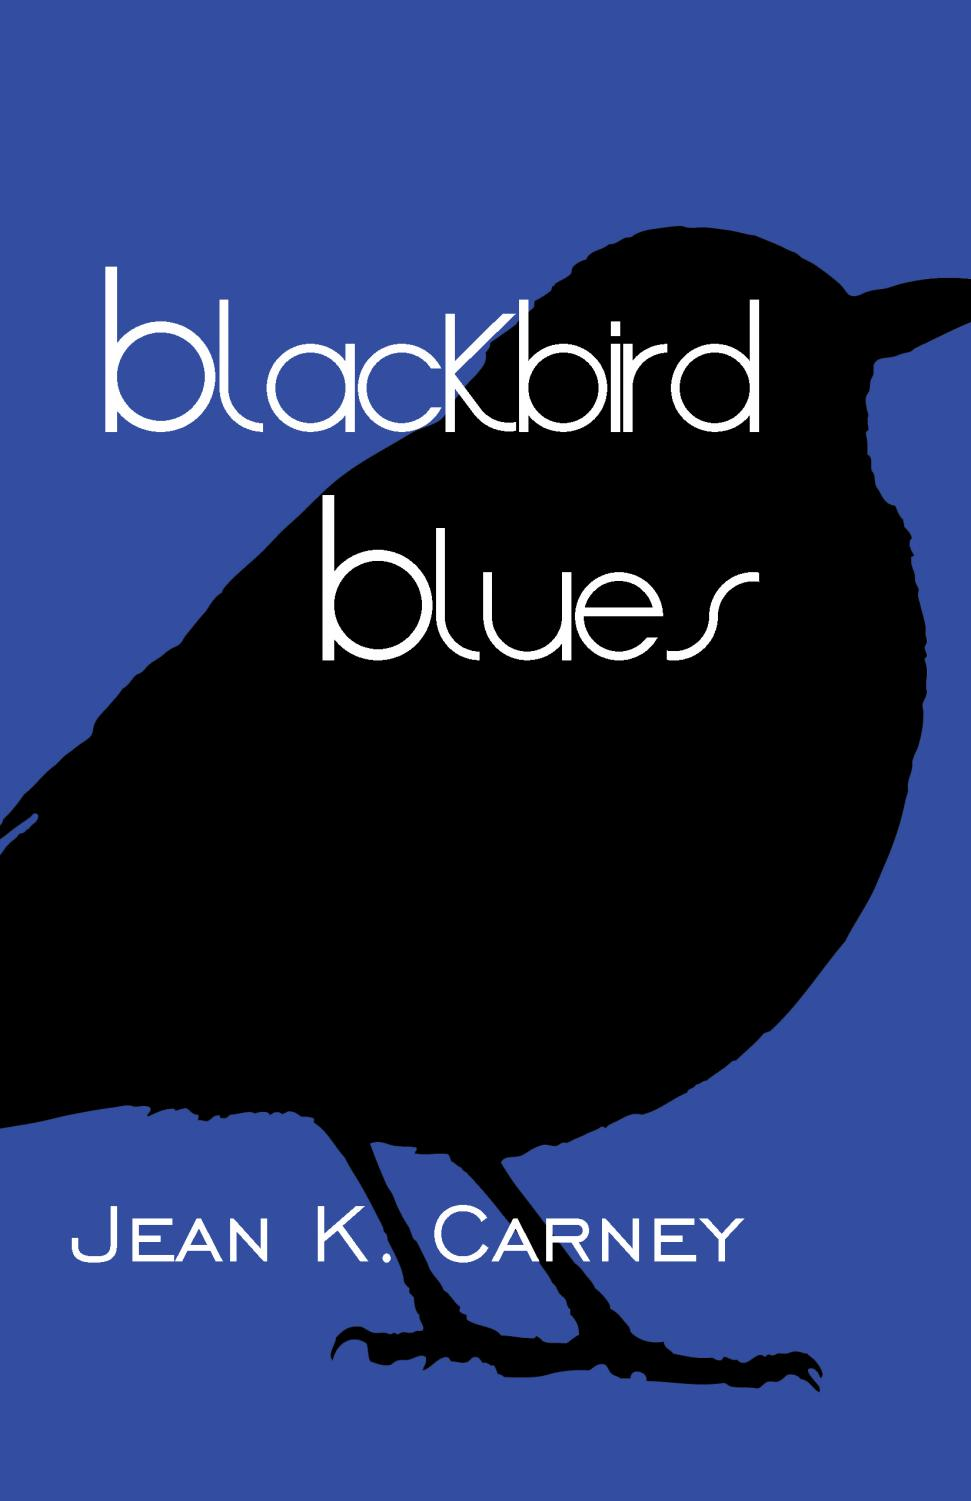 The cover of the Blackbird Blues.